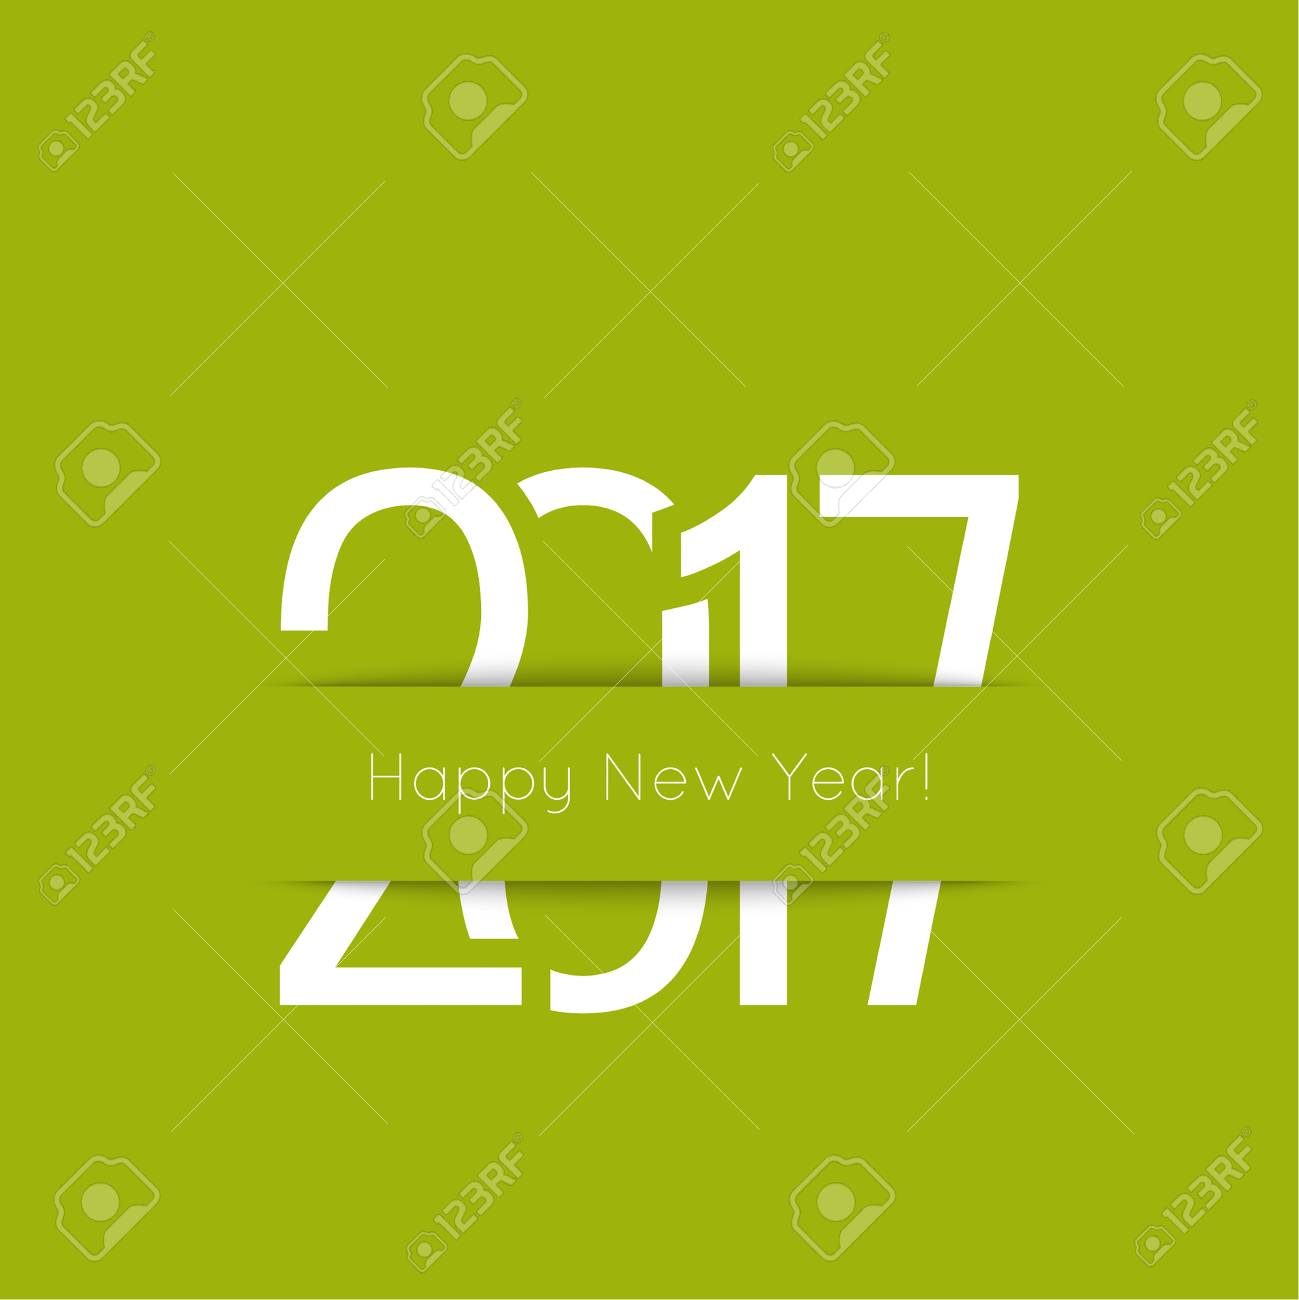 2017 happy new year background for greeting card flyer invitation poster